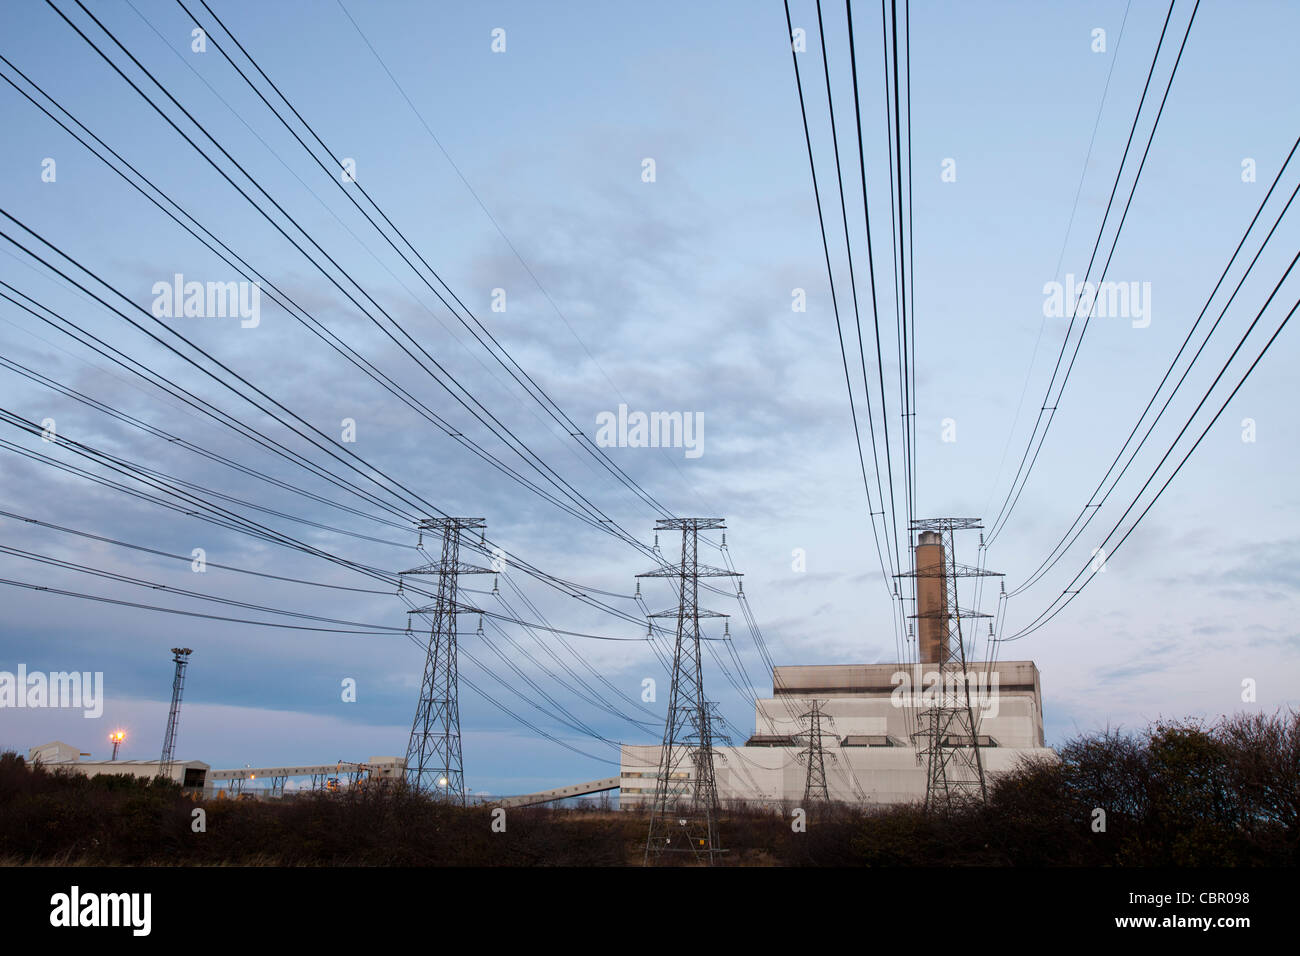 Power lines leading to an aluminium smelting plant on the outskirts of Ashington in Northumberland, UK. - Stock Image